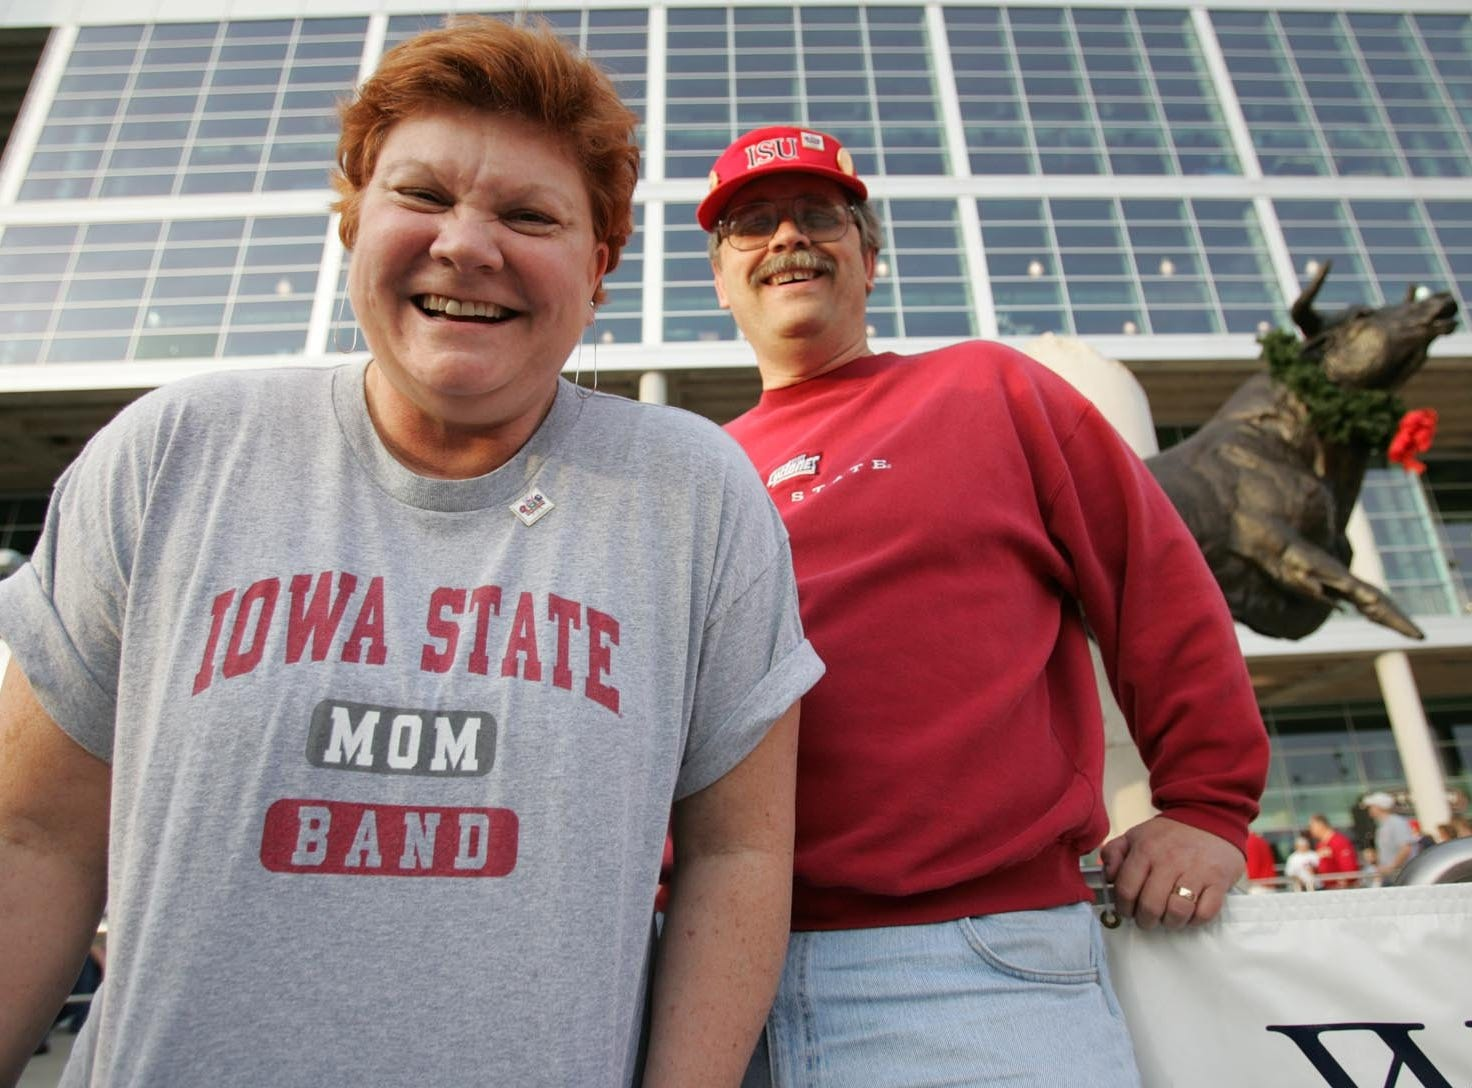 Proud parents: Dirk Brinkmeyer and wife Diane are shown in Houston, Texas, to see son Grant play in Iowa State's band at the 2005 Houston Bowl.